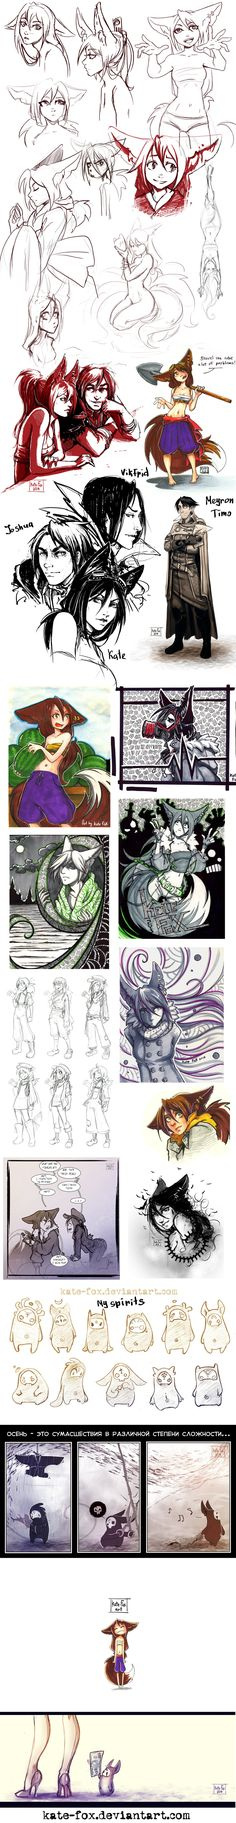 sketches13 by Kate-FoX.deviantart.com on @DeviantArt